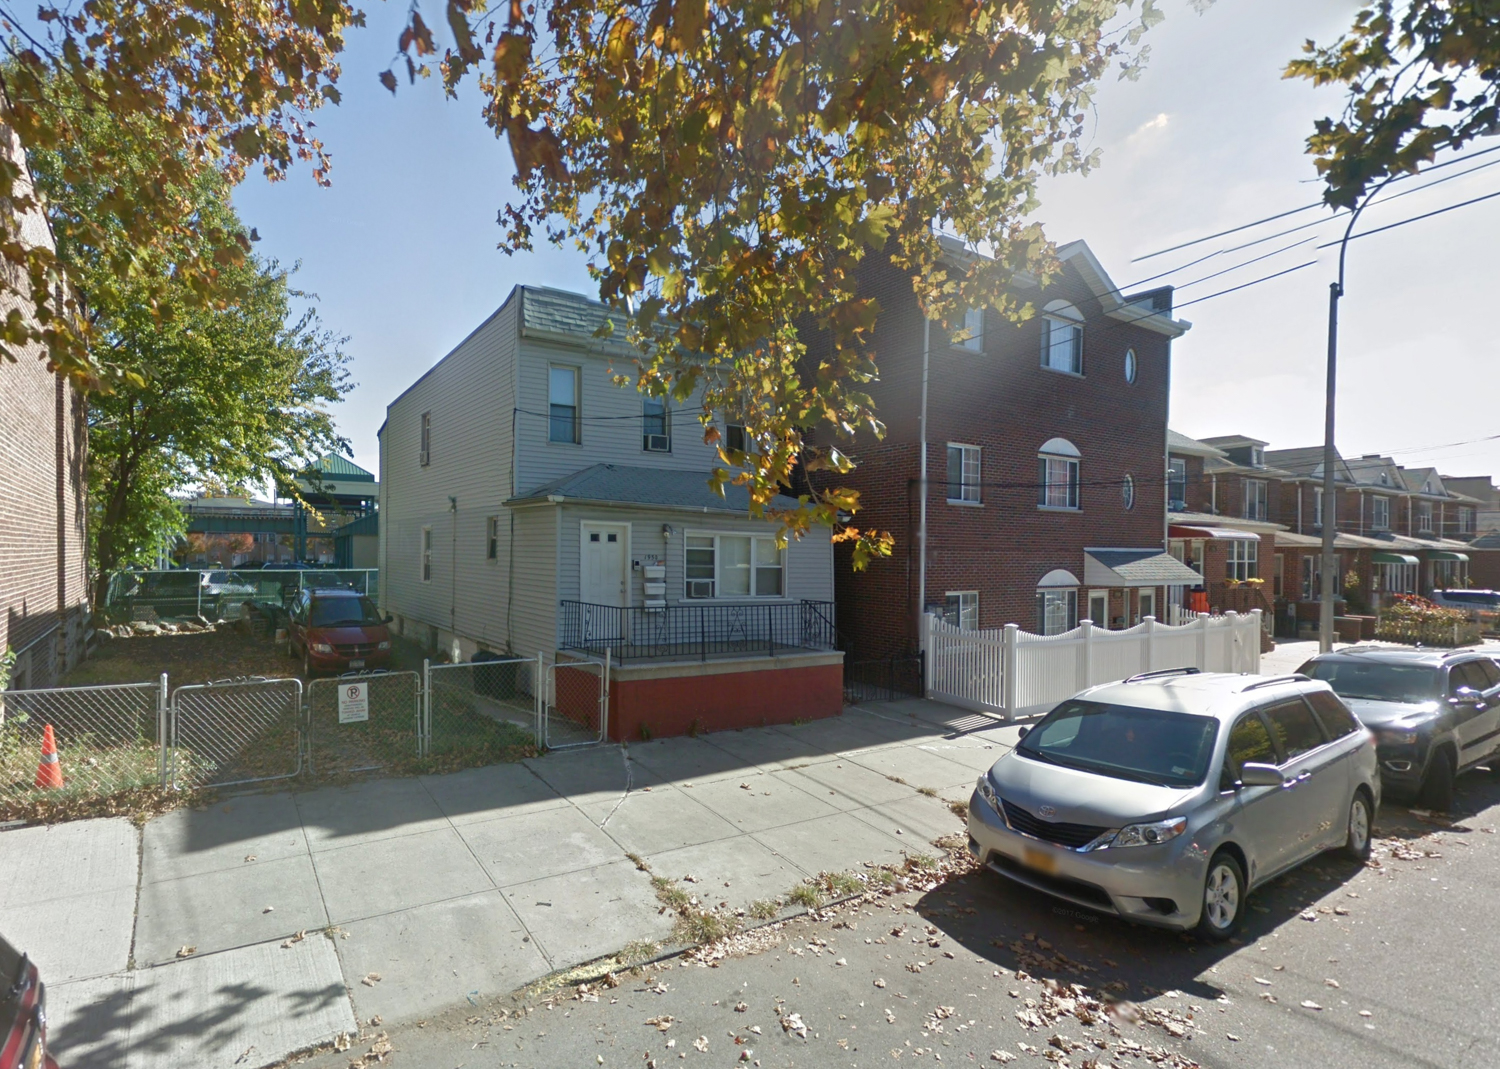 1950 Hobart Avenue, via Google Maps